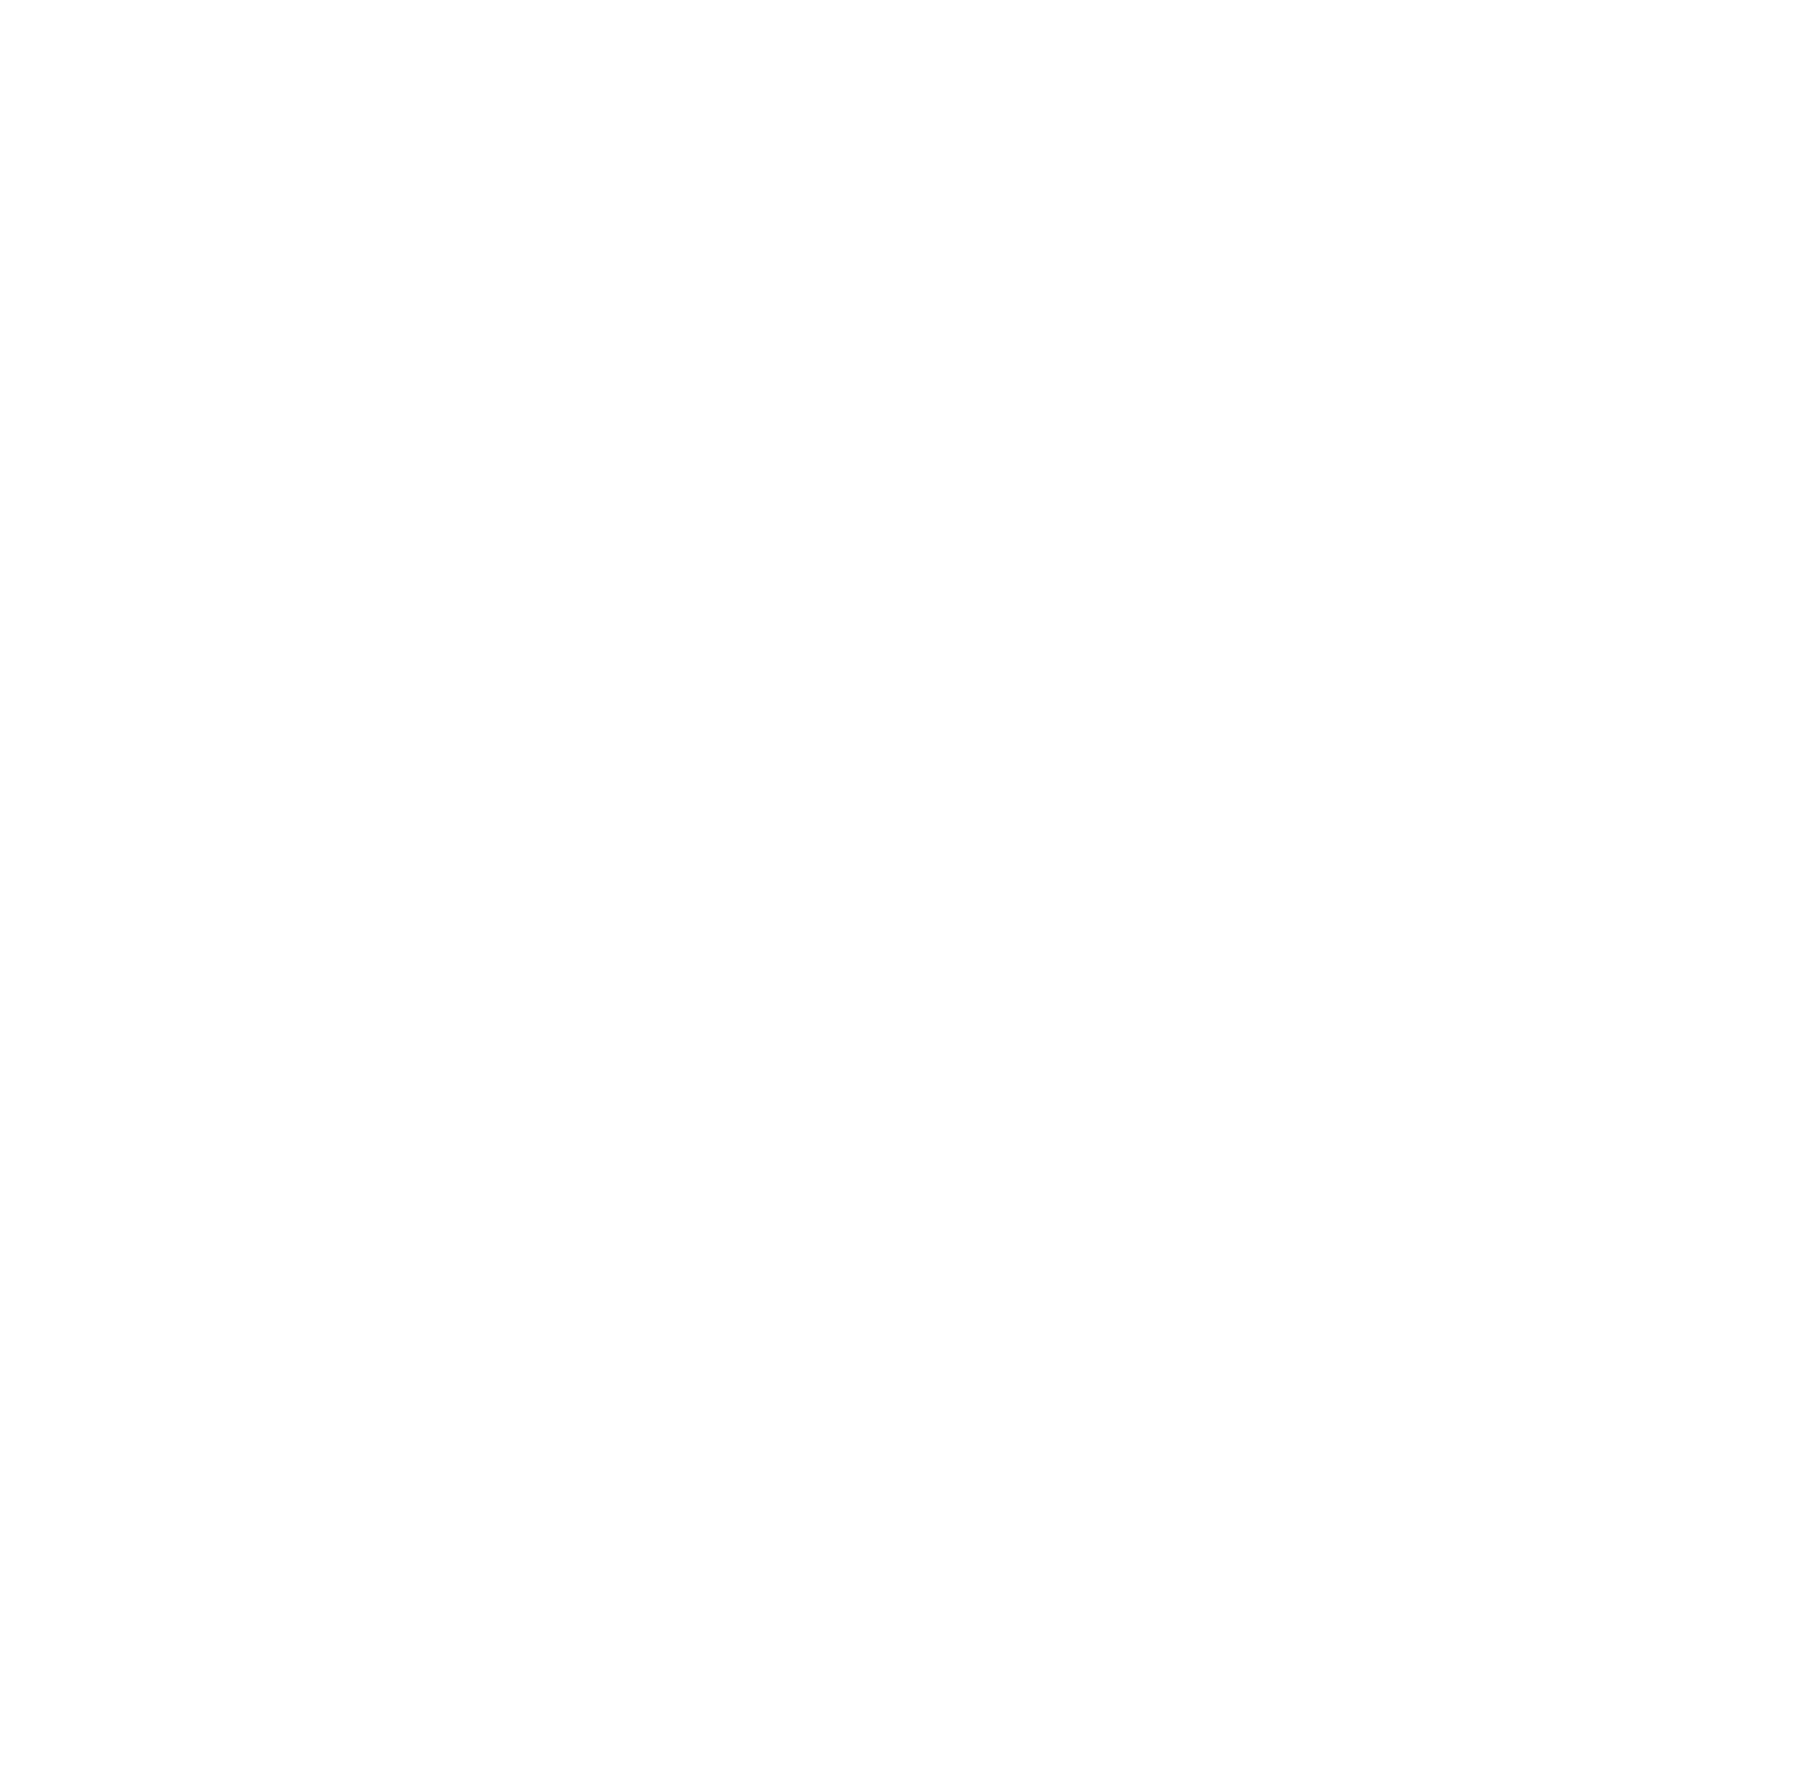 Here you can know more about the video game music production service of our audio communication & marketing agency